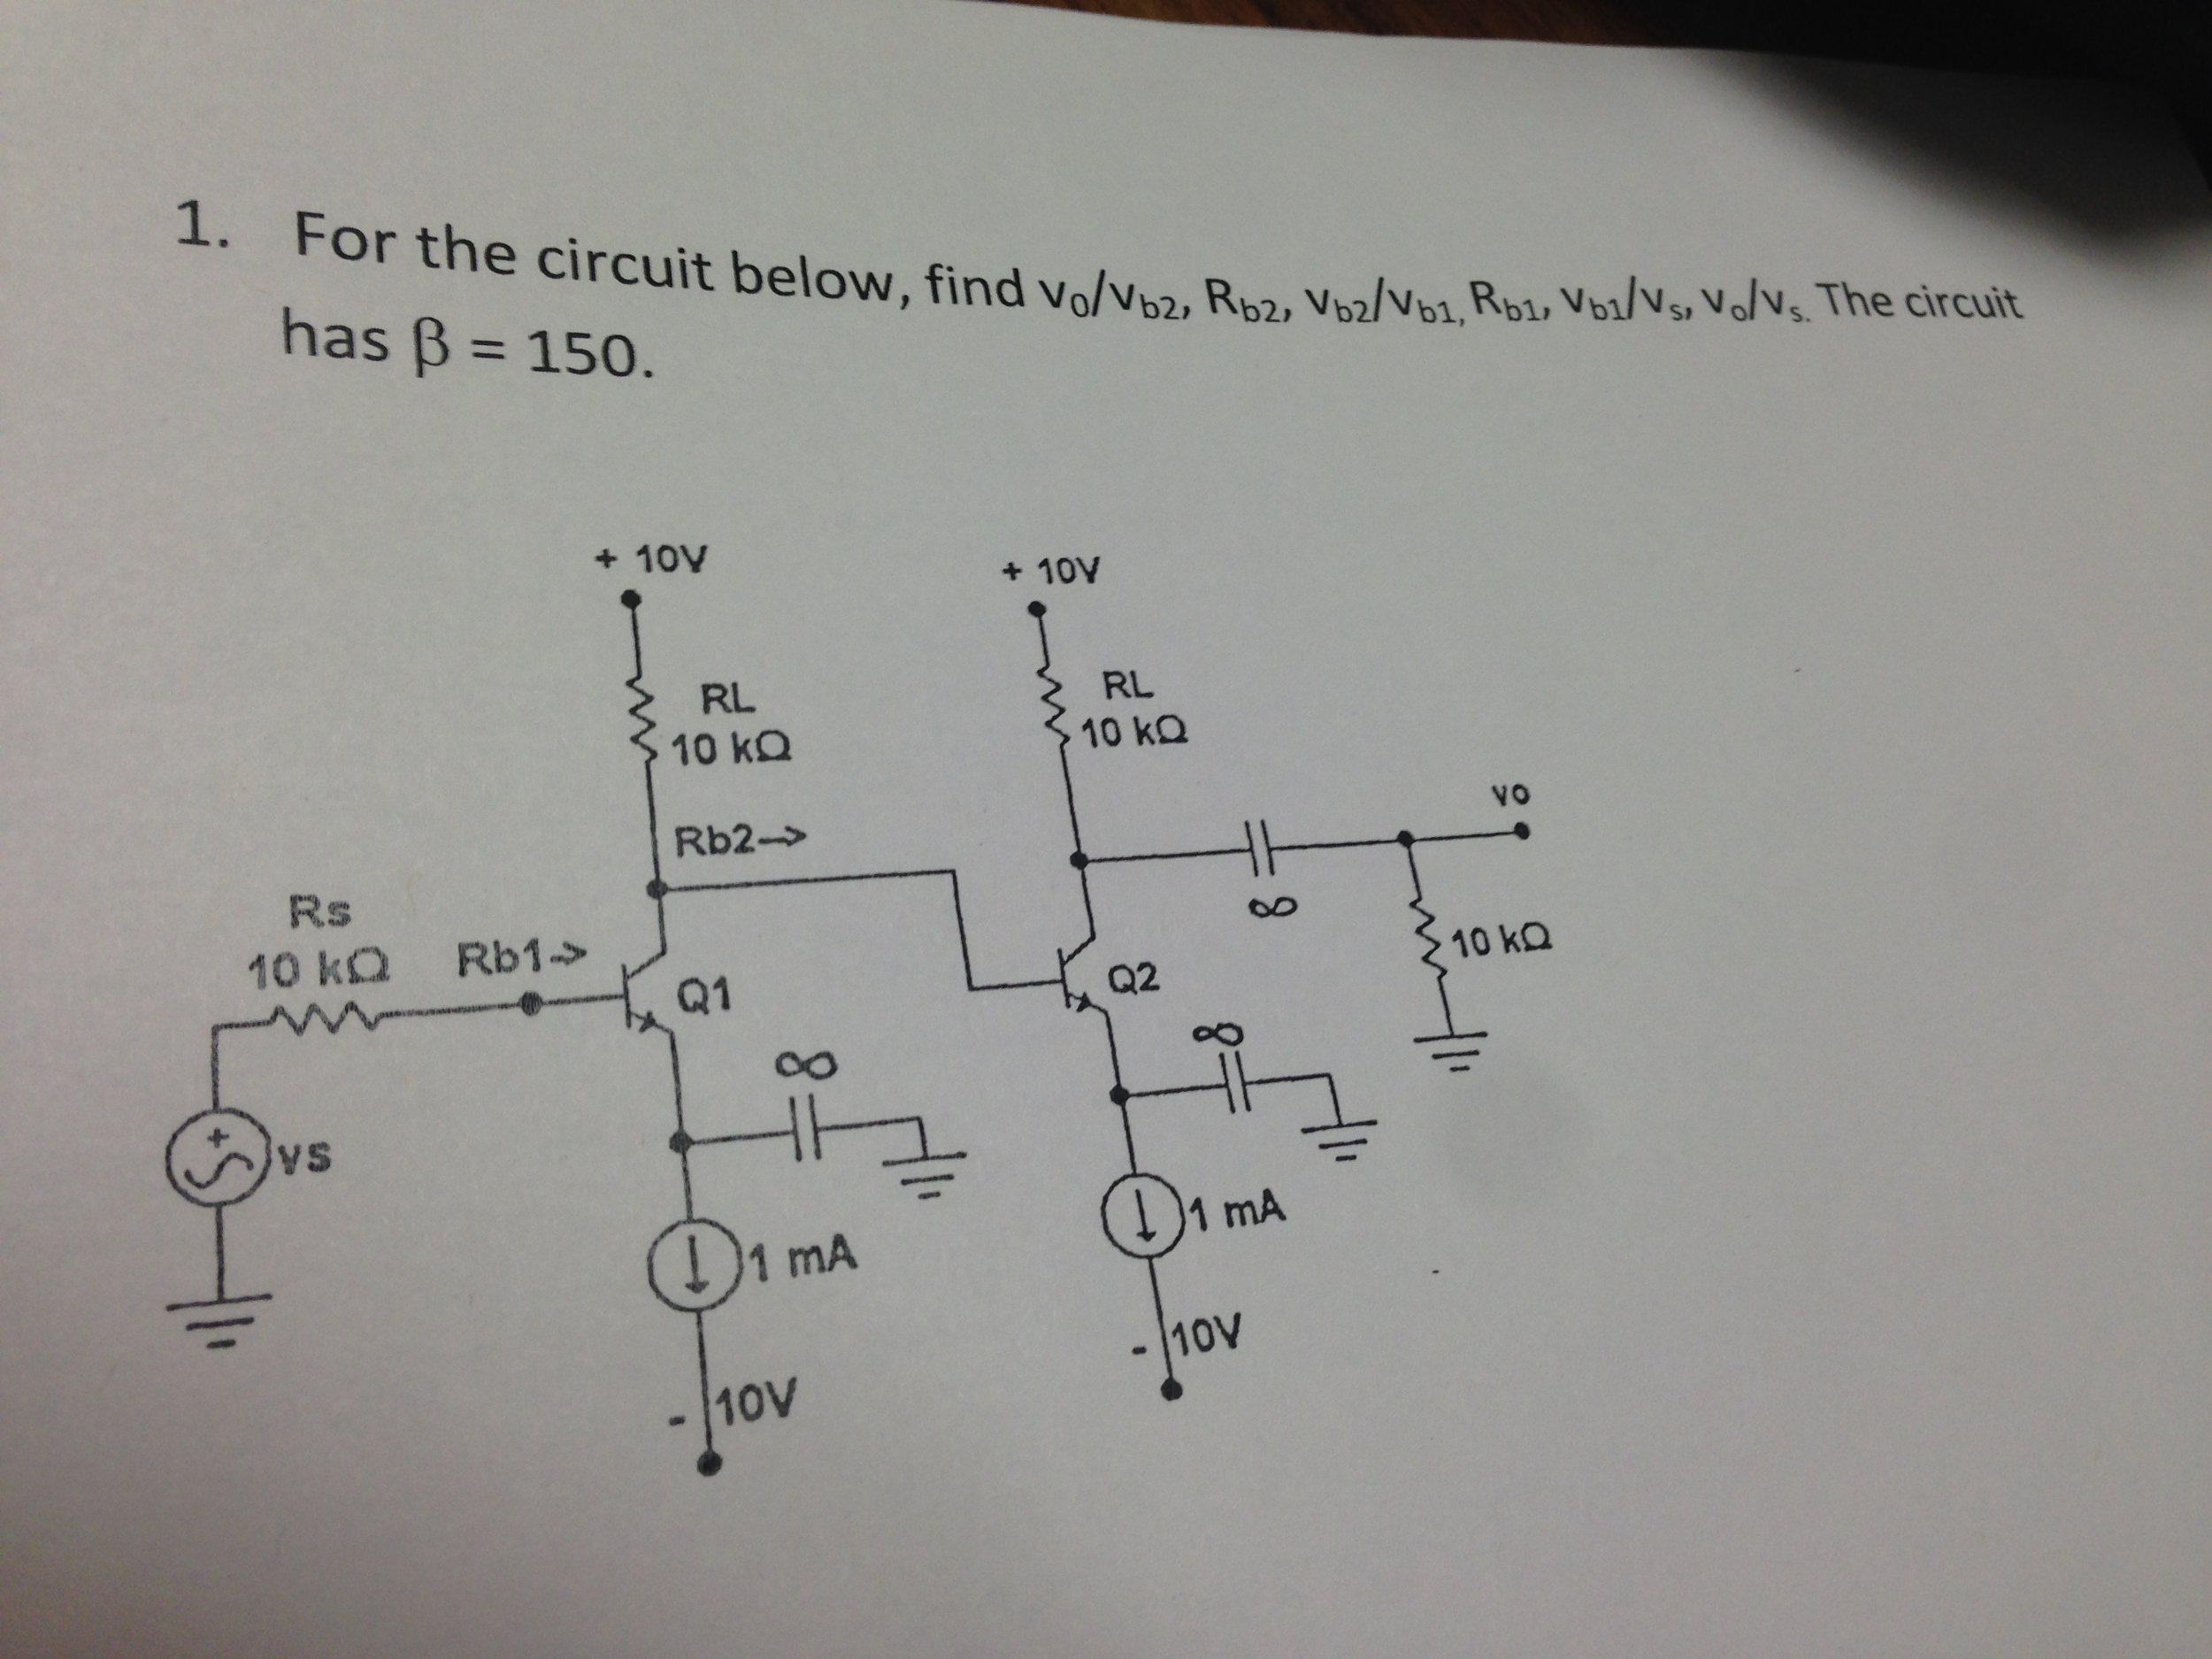 For the circuit below, find v0/vb2, Rb2, Vb2/Vb1,